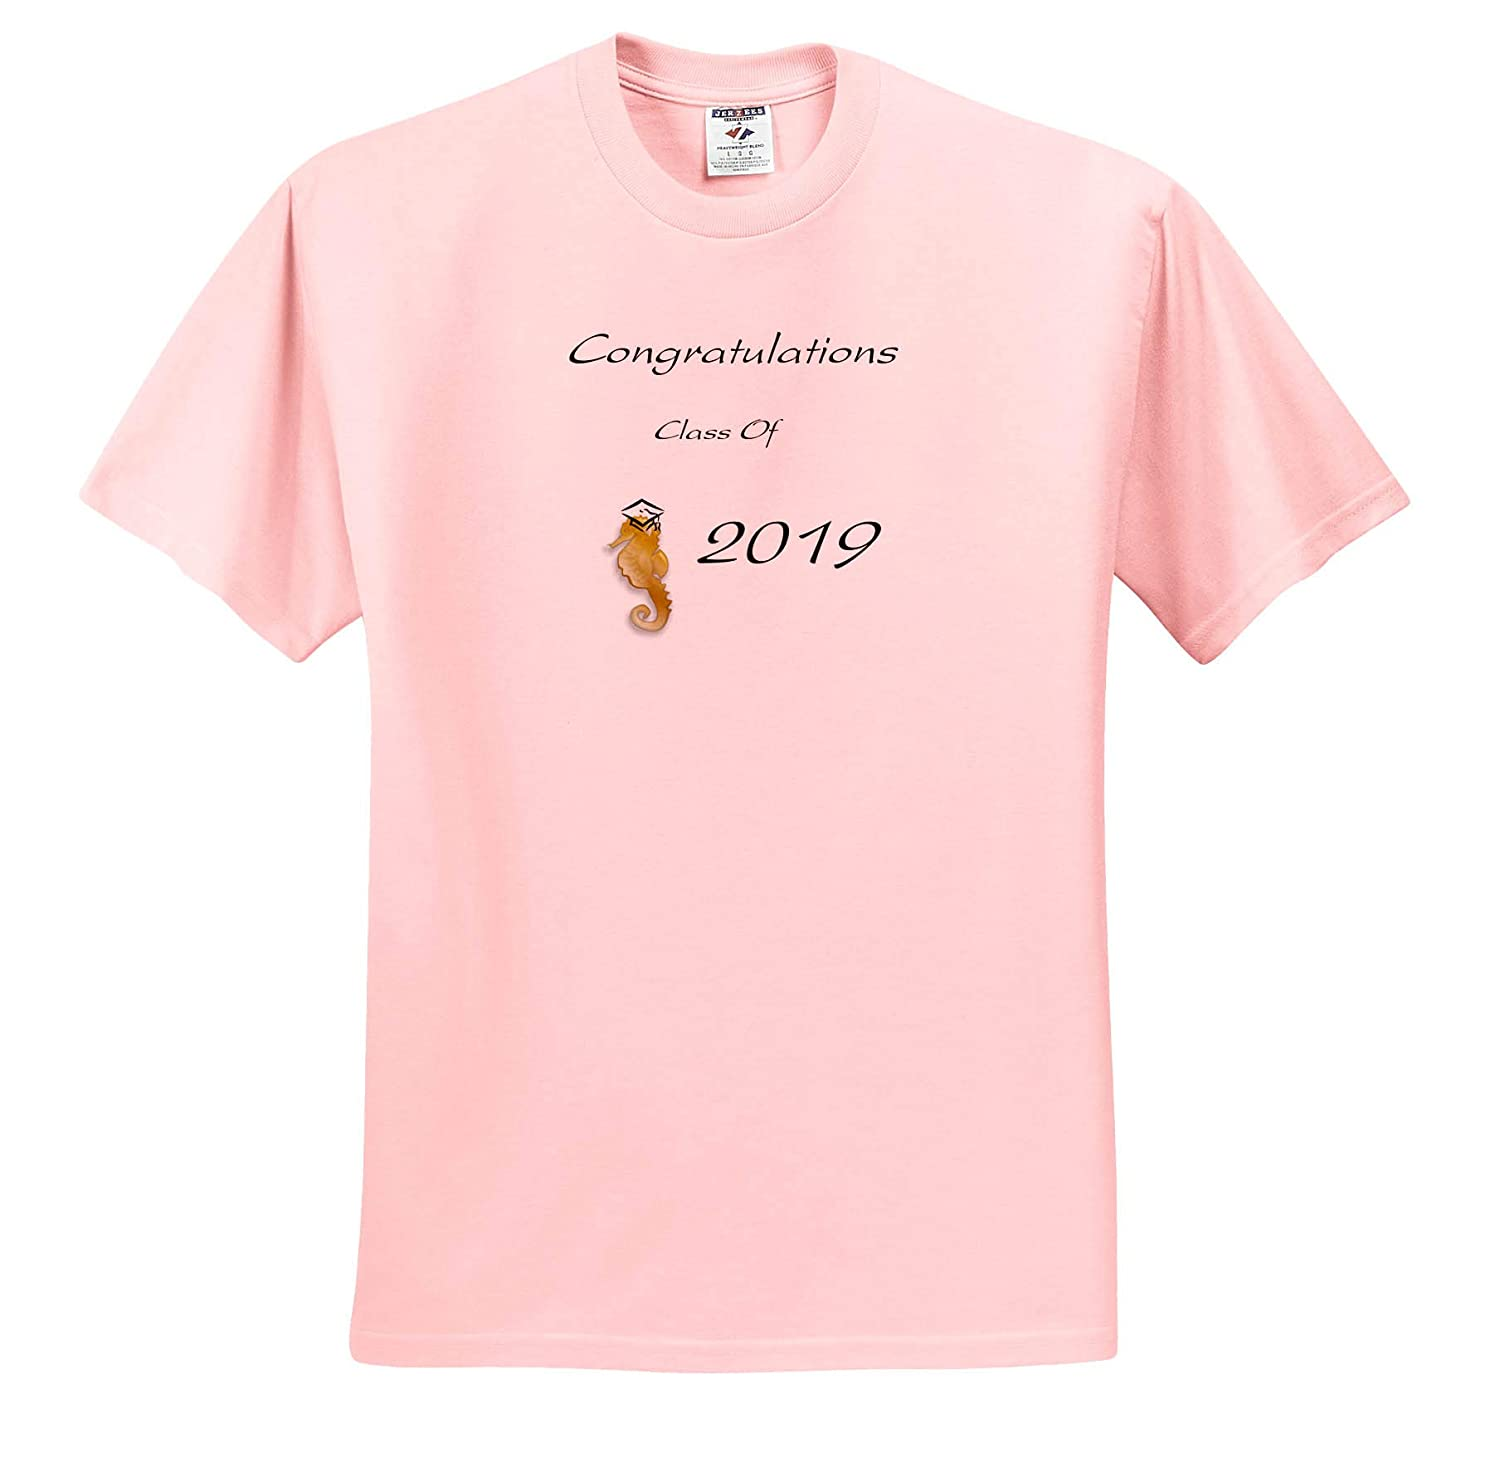 T-Shirts Graduation 3dRose Lens Art by Florene Image of Cute Simple Congratulations with Seahorse Wears Cap